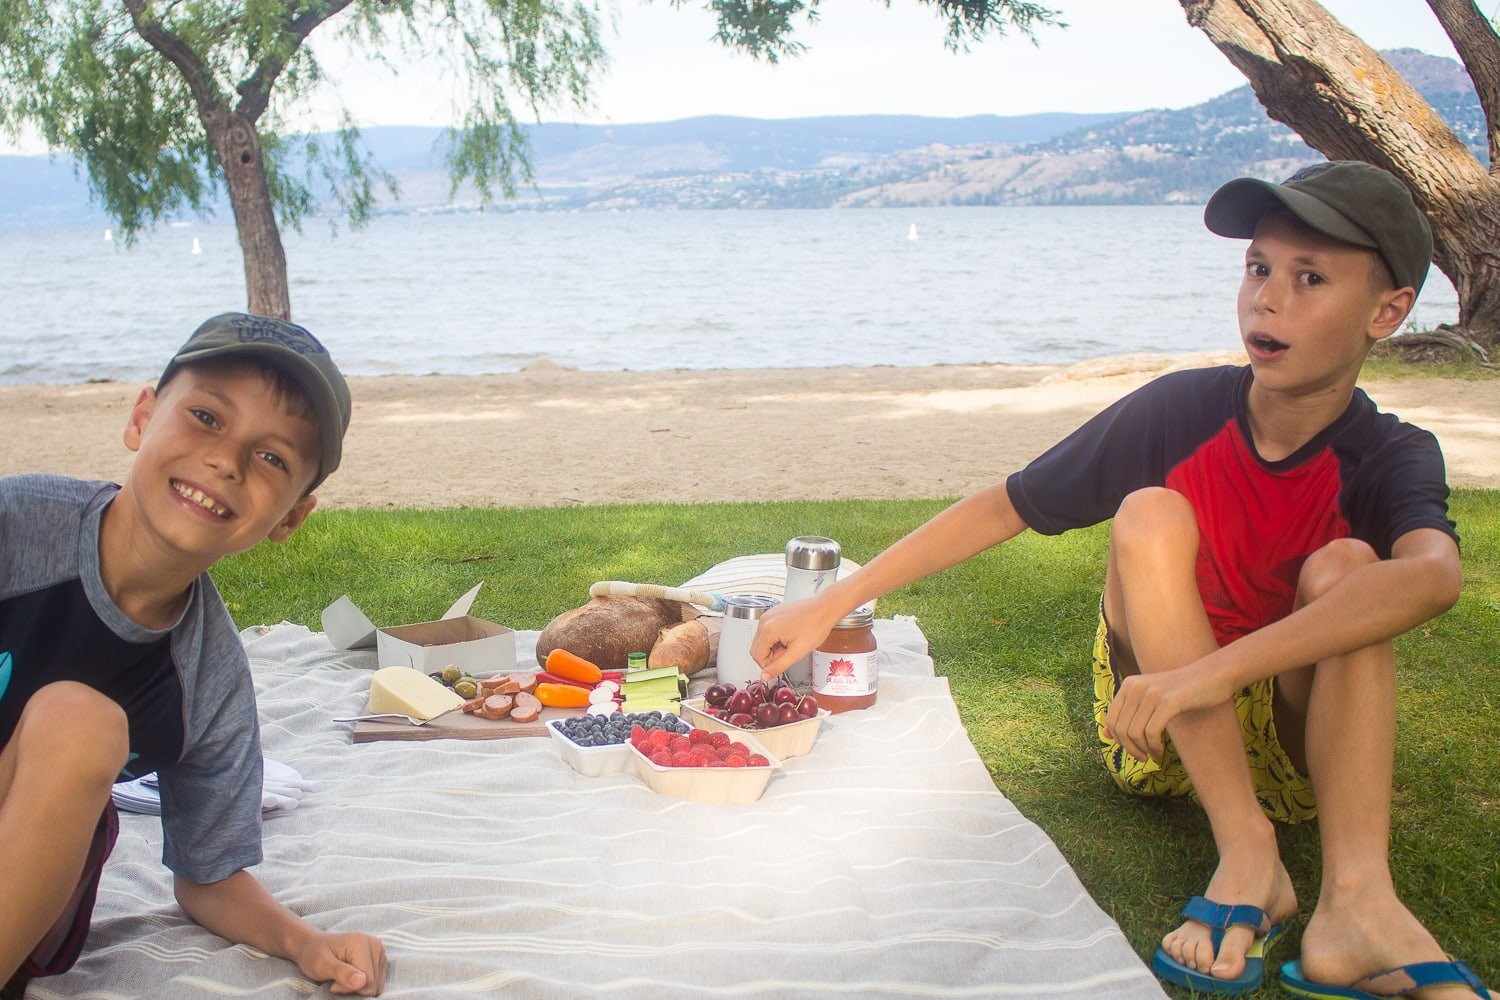 Two boys sitting next to a picnic by the beach